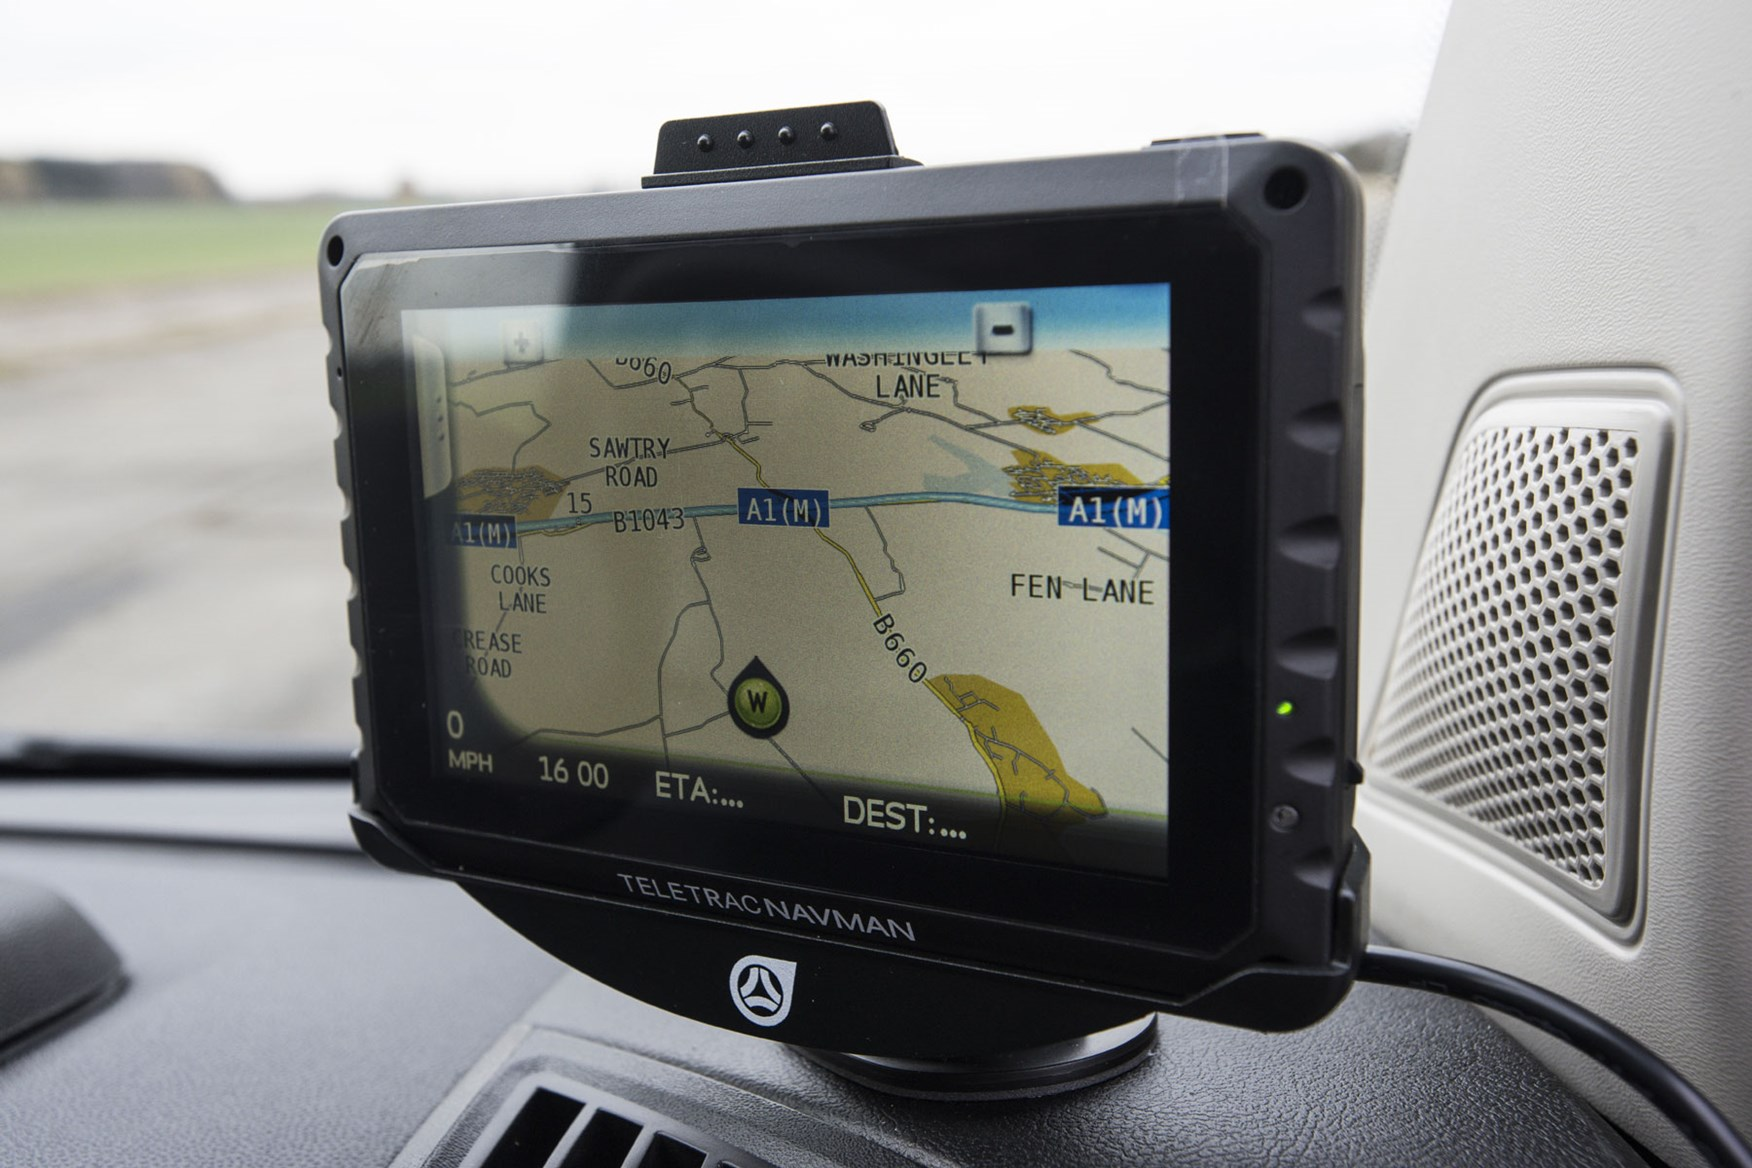 Citroen Relay review - Teletrac sat-nav and vehicle tracking system